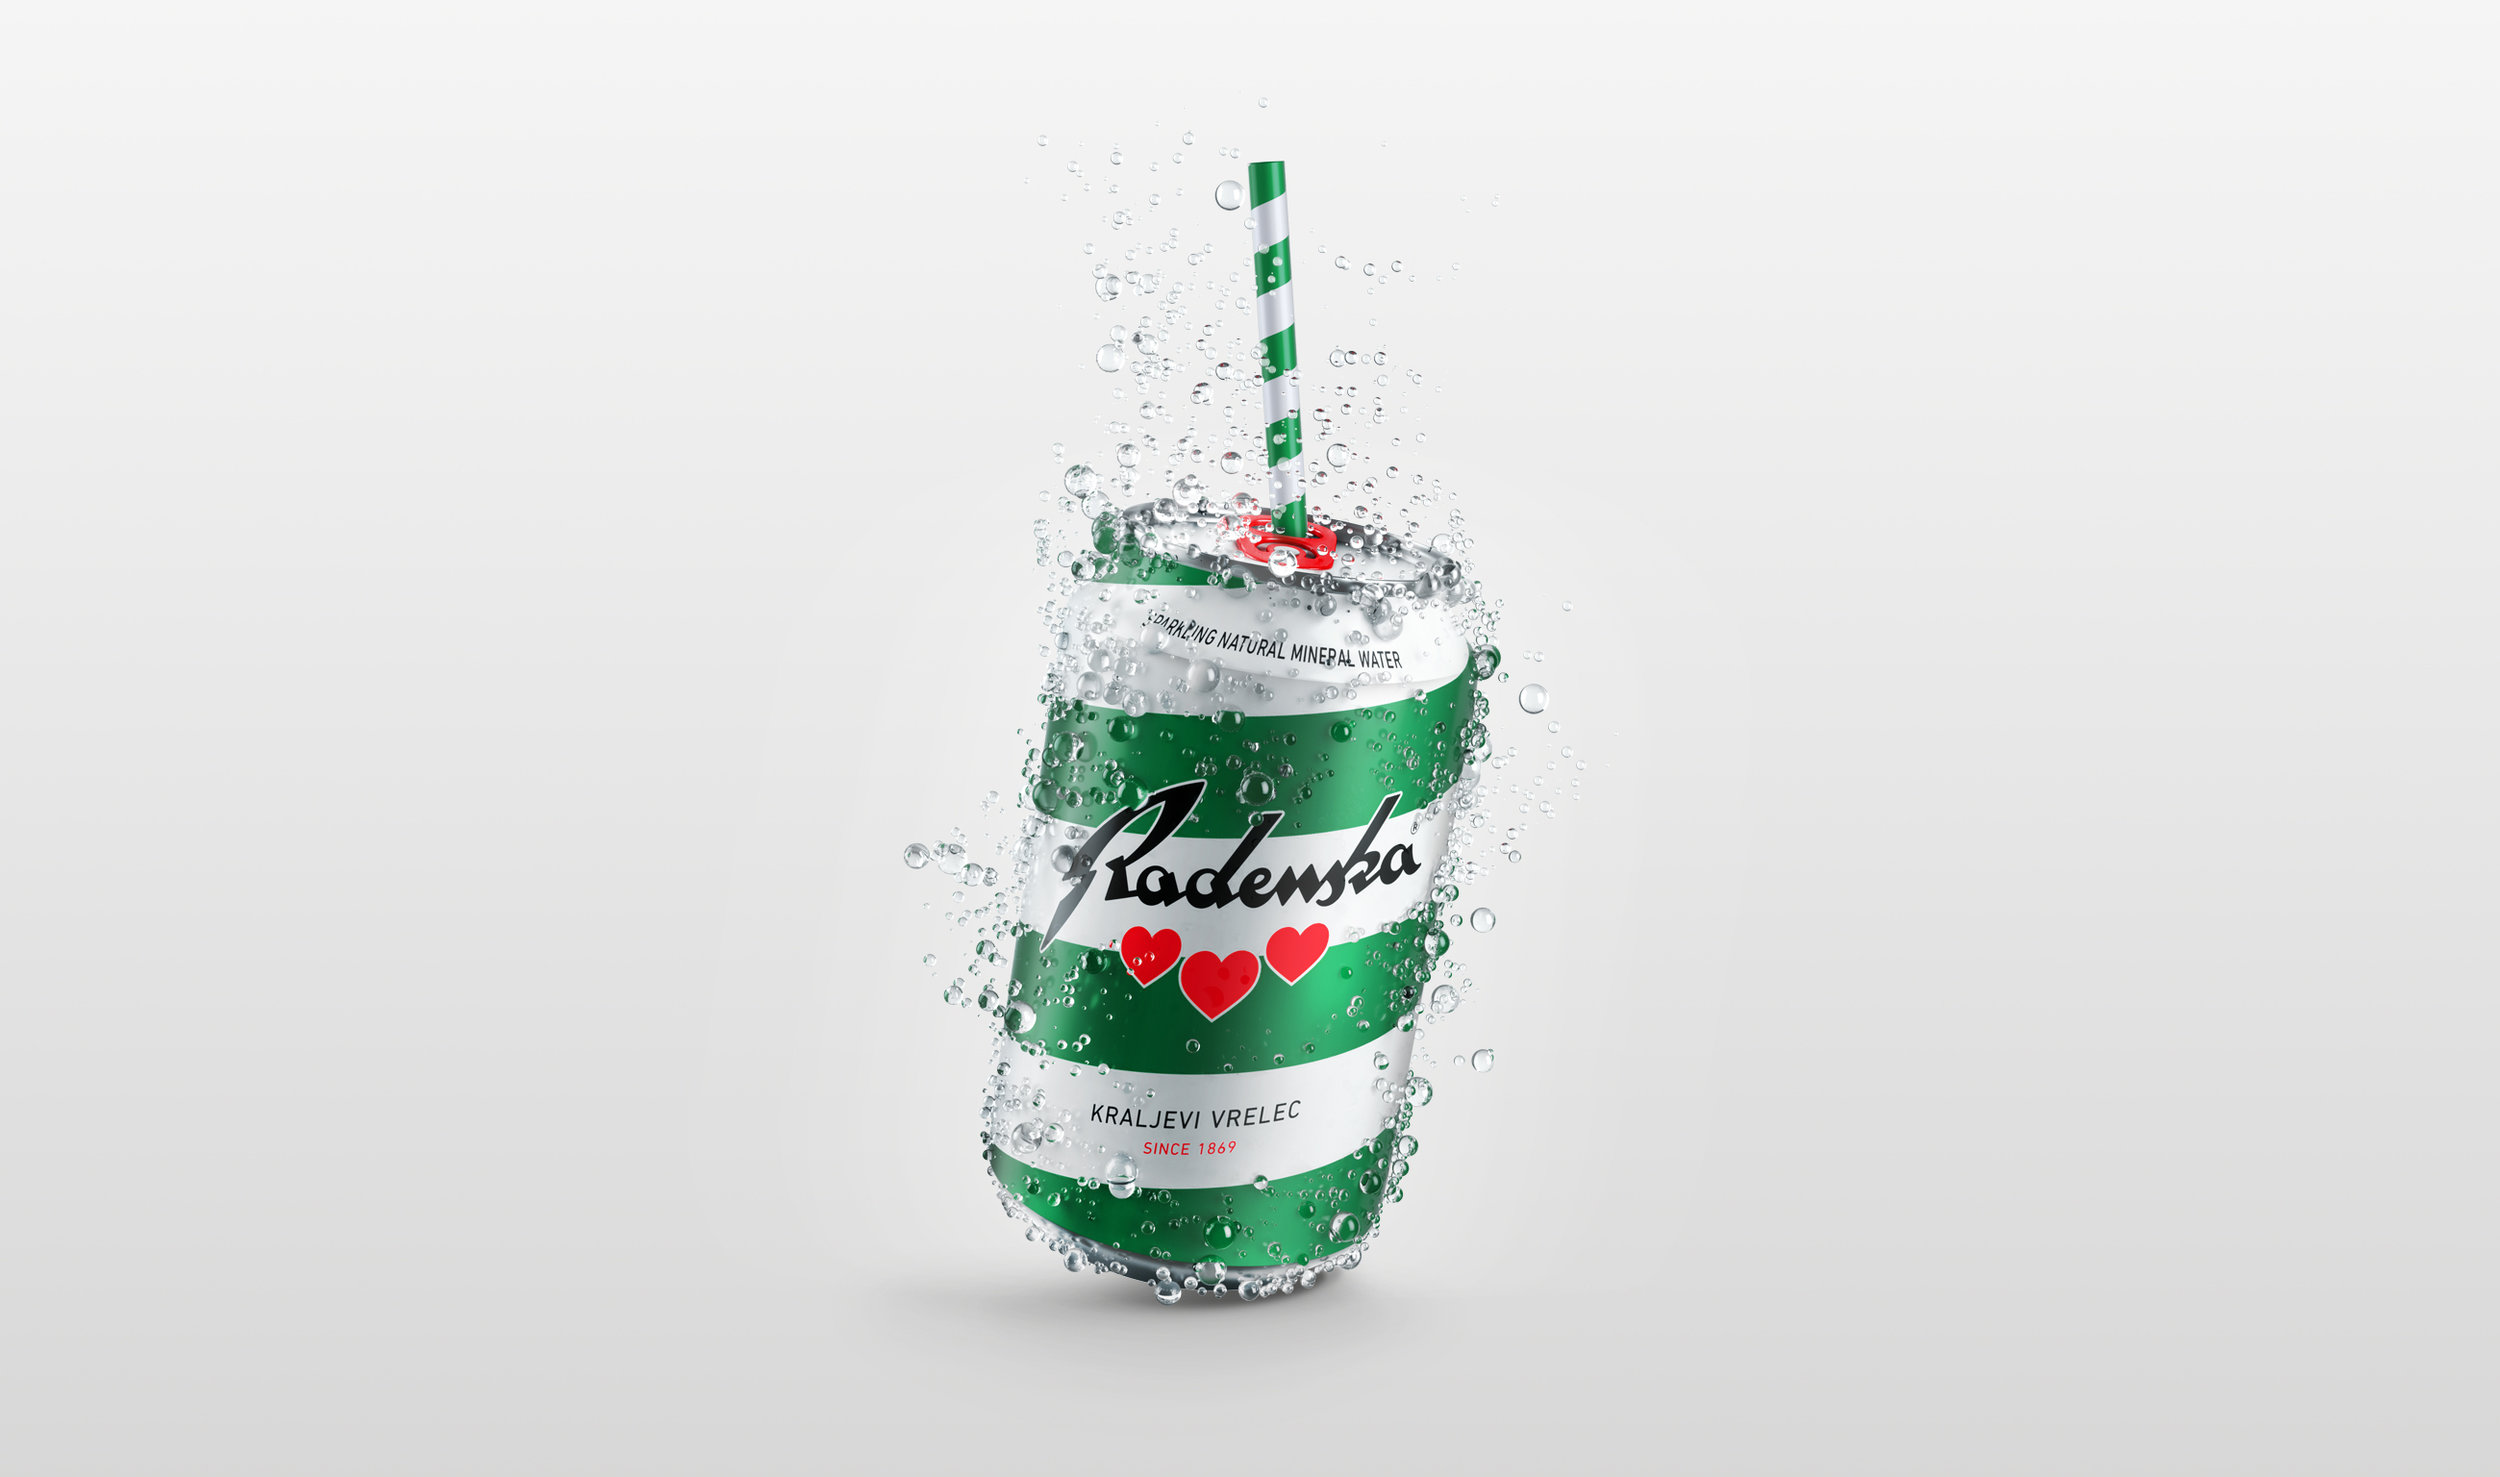 Sparkling Mineral Water Radenska in a Can / World Brand Design Society